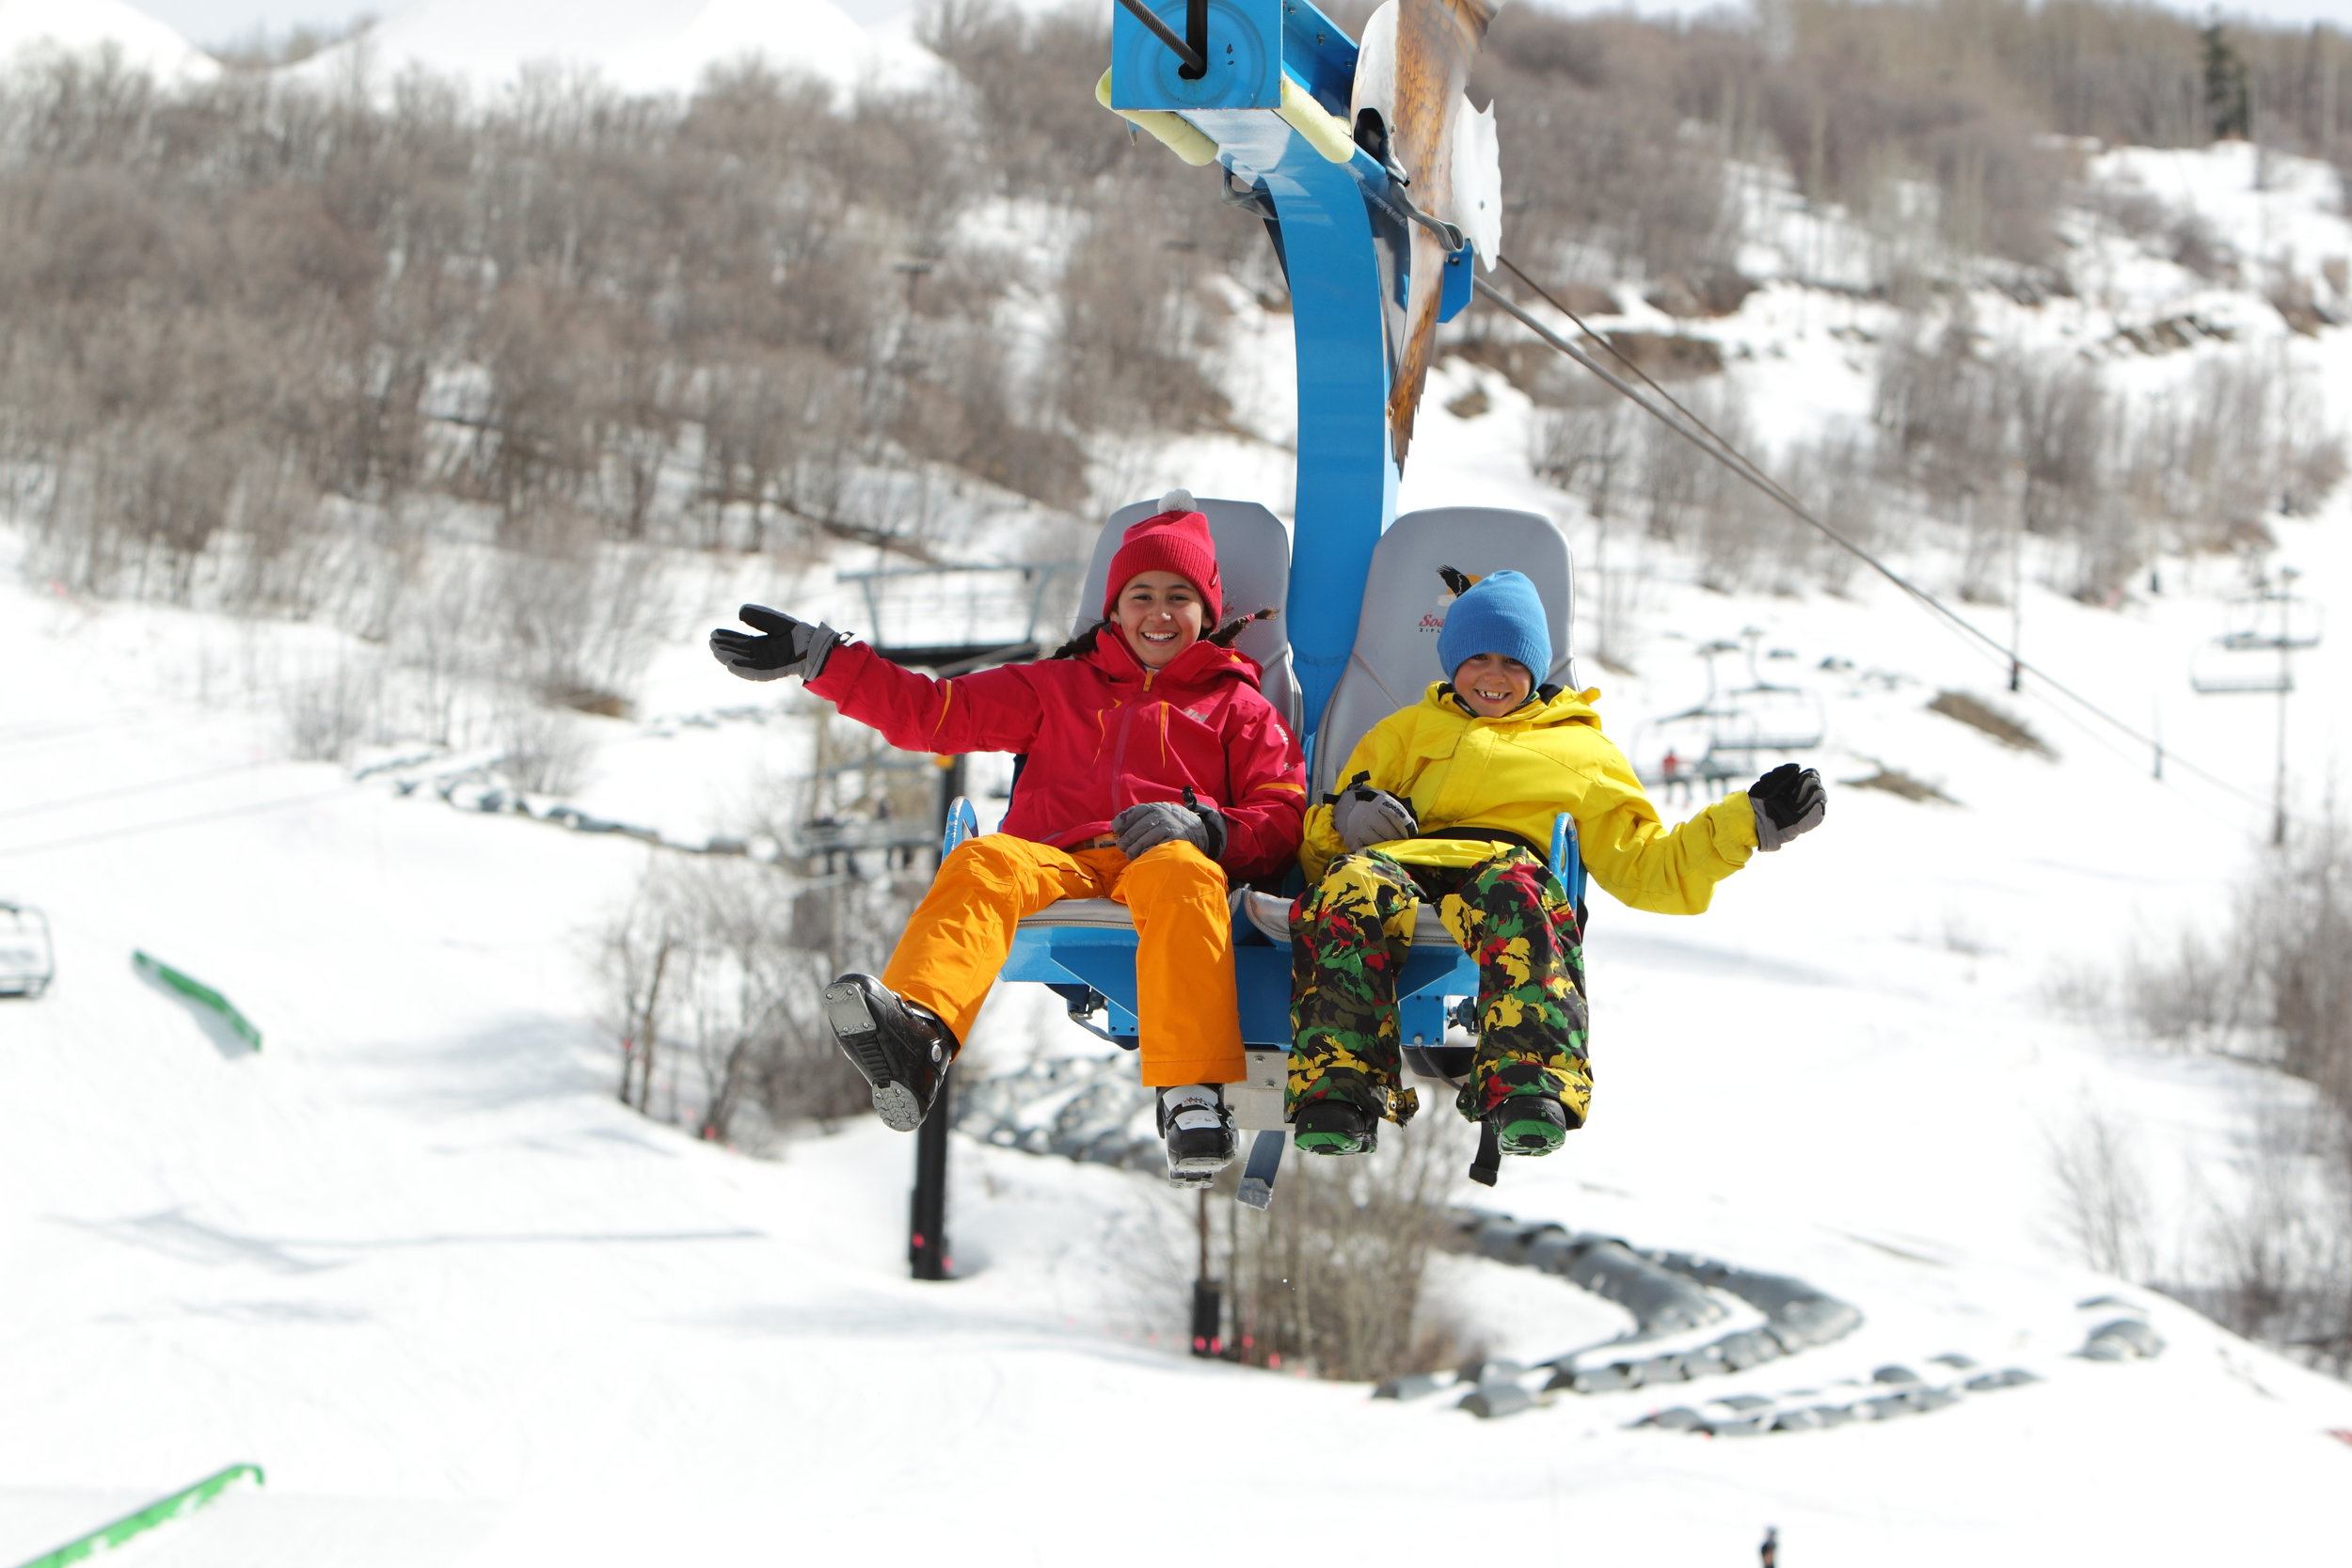 What to do off the slopes?